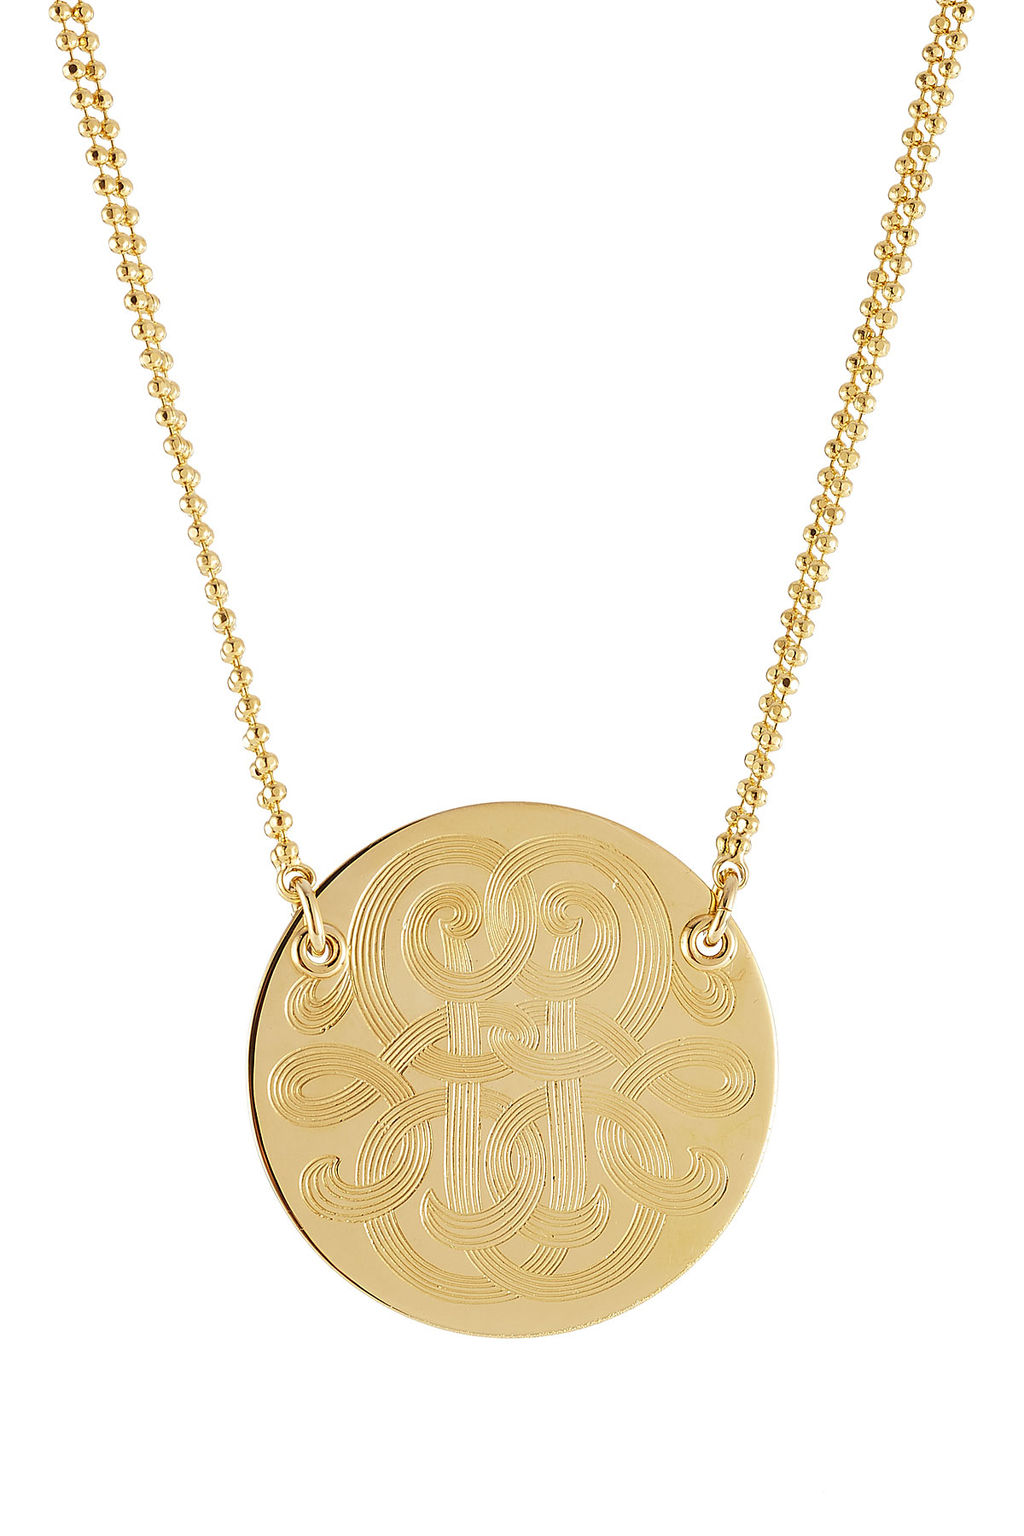 Diva Large 24kt Gold Plated Necklace - predominant colour: gold; occasions: casual, creative work; style: pendant; length: mid; size: standard; material: chain/metal; finish: metallic; season: s/s 2016; wardrobe: basic